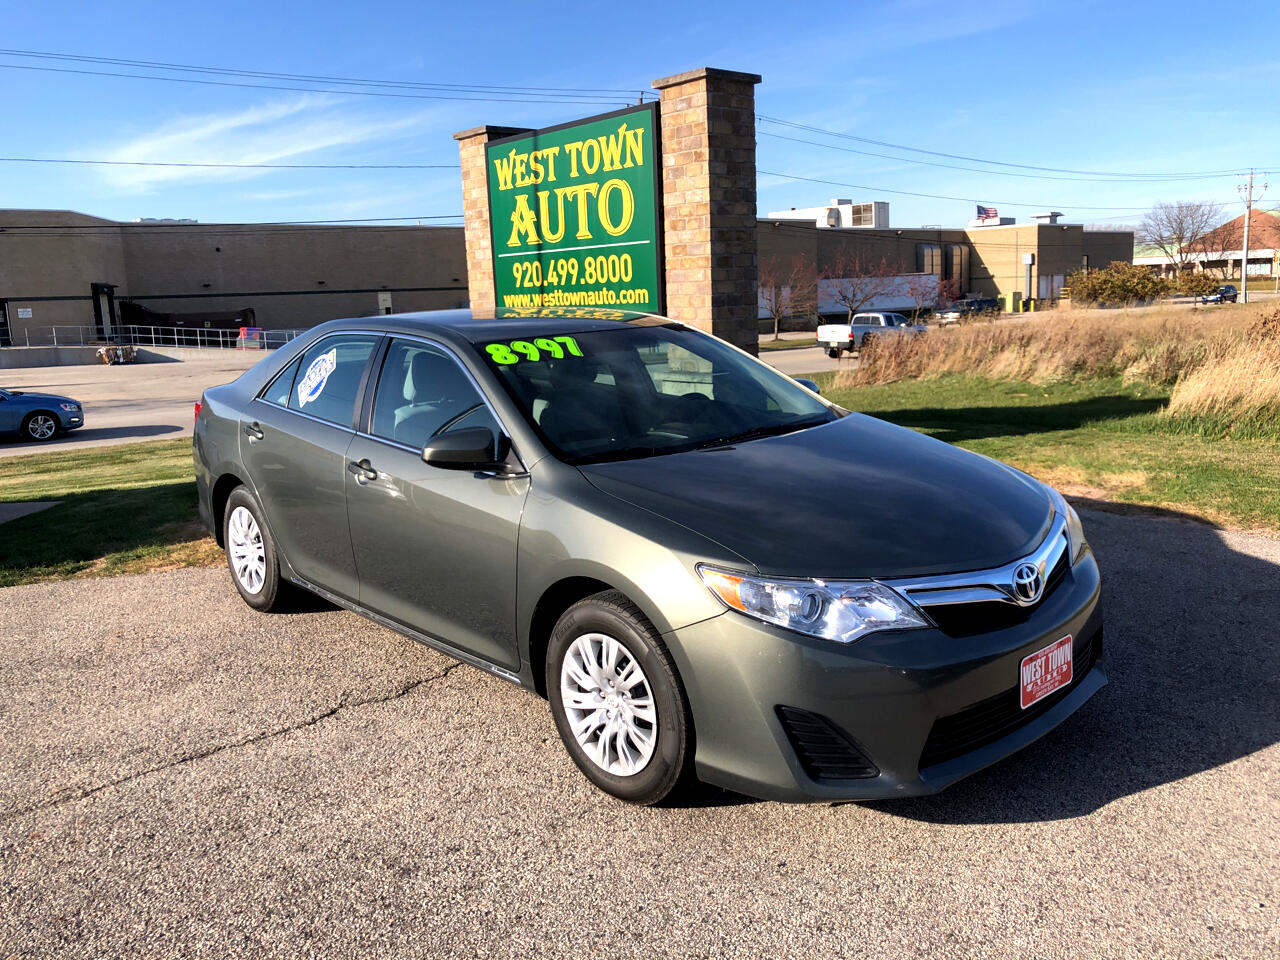 Toyota Camry 4dr Sdn I4 Auto LE (Natl) 2014